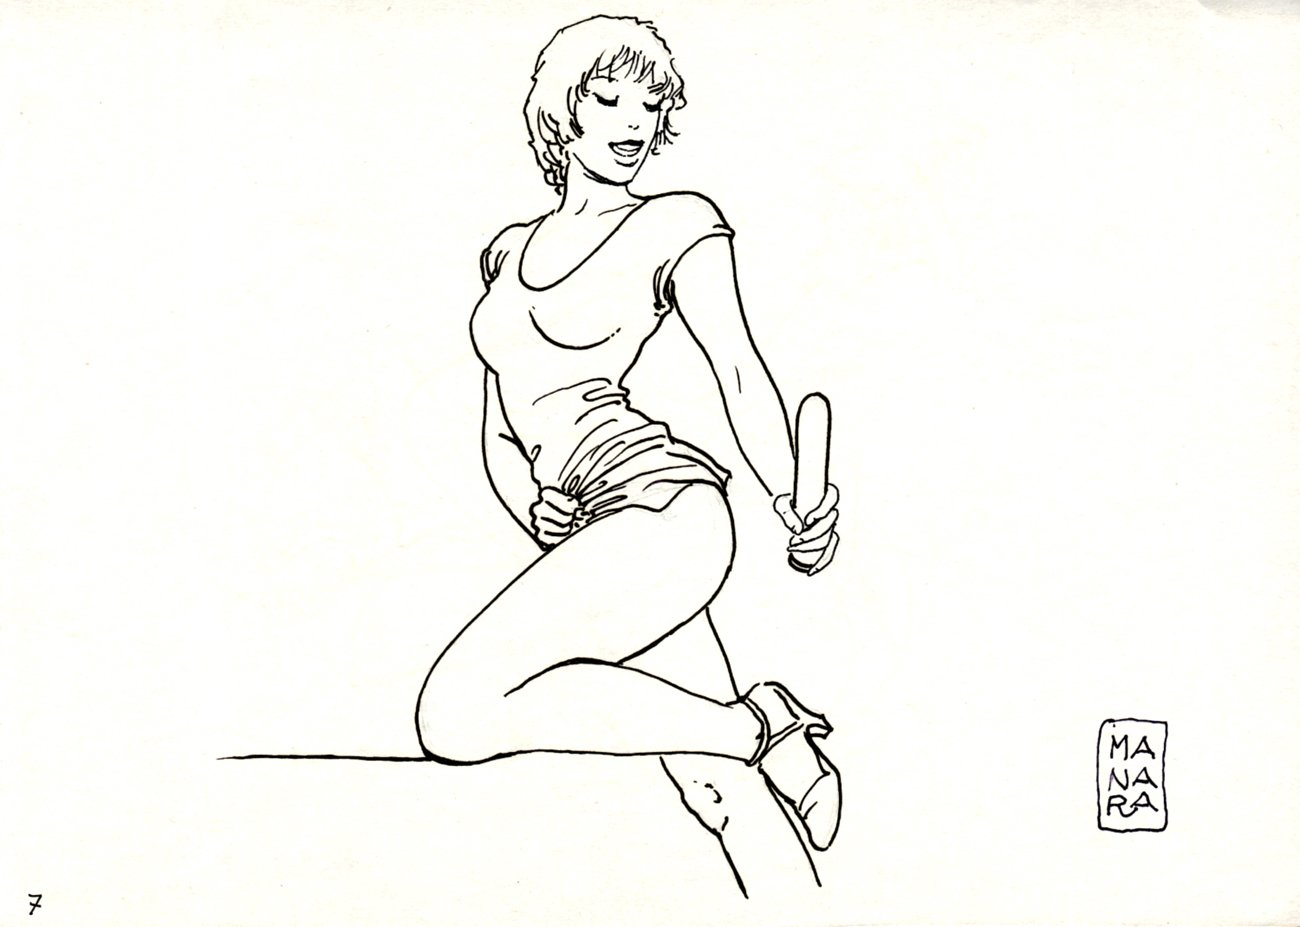 'WEB GIRLS' Wendi Published Pinup #7 (OVER 18 YEARS OLD TO VIEW!) 1999